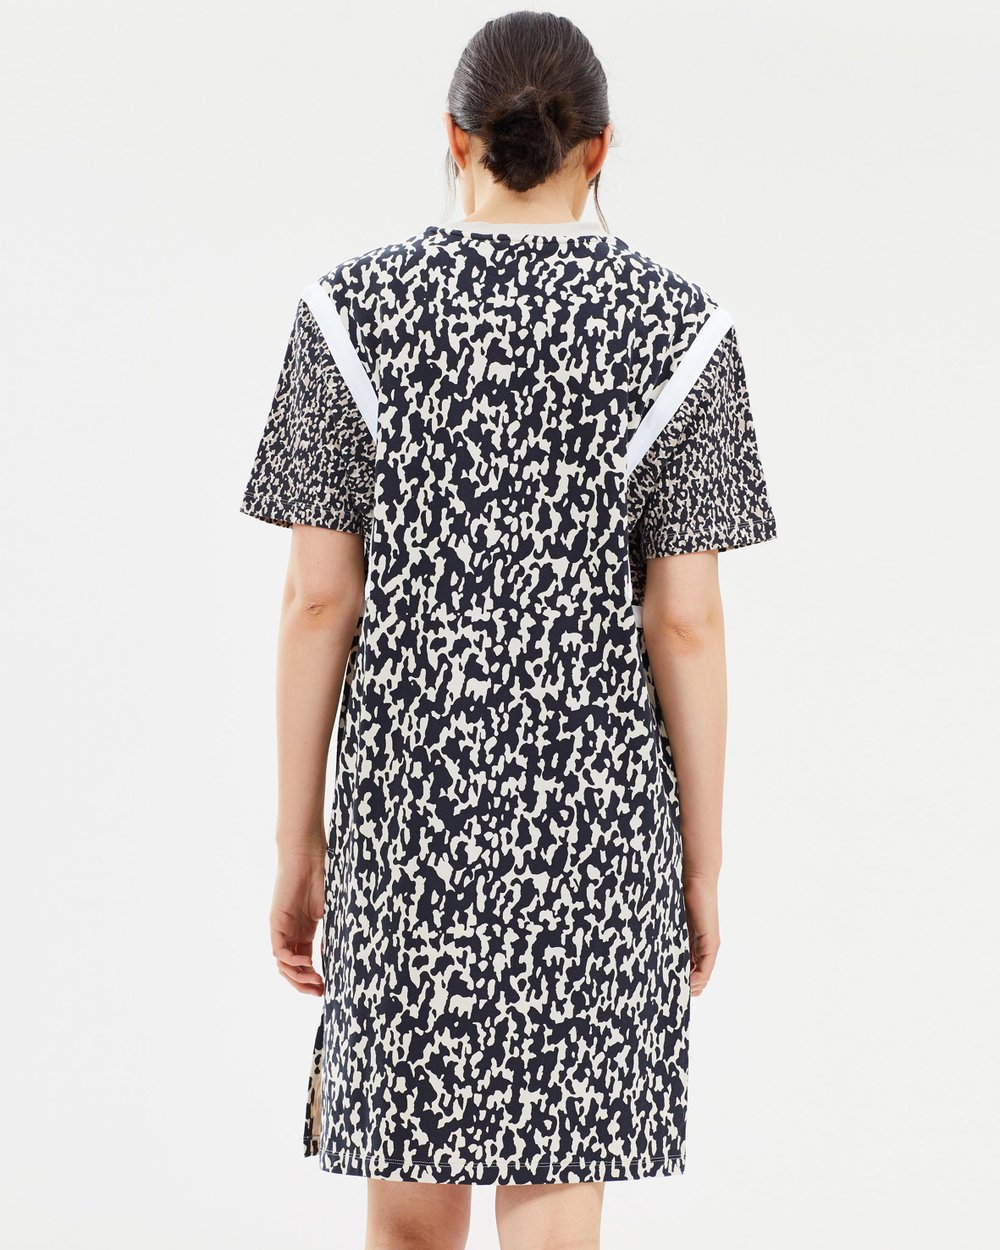 Leoflage Tee Dress by adidas Originals Online  72a319327